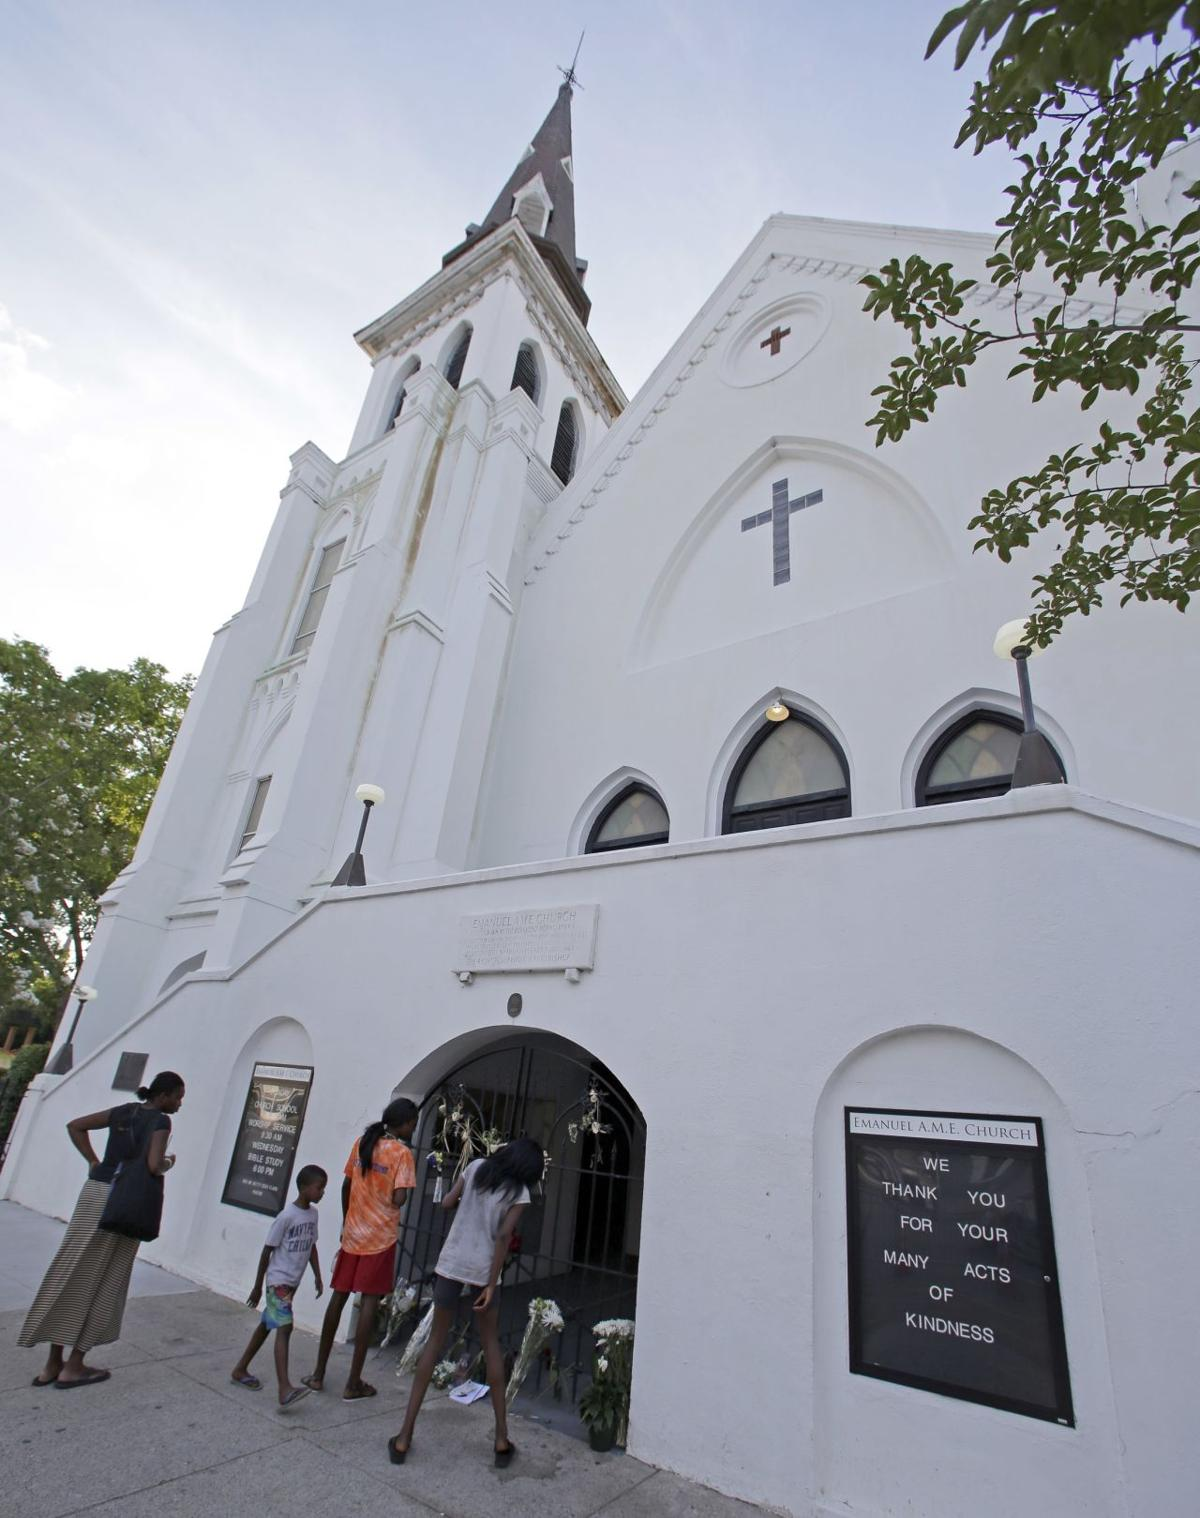 Polite rites will not absolve Charleston of lingering wrongs